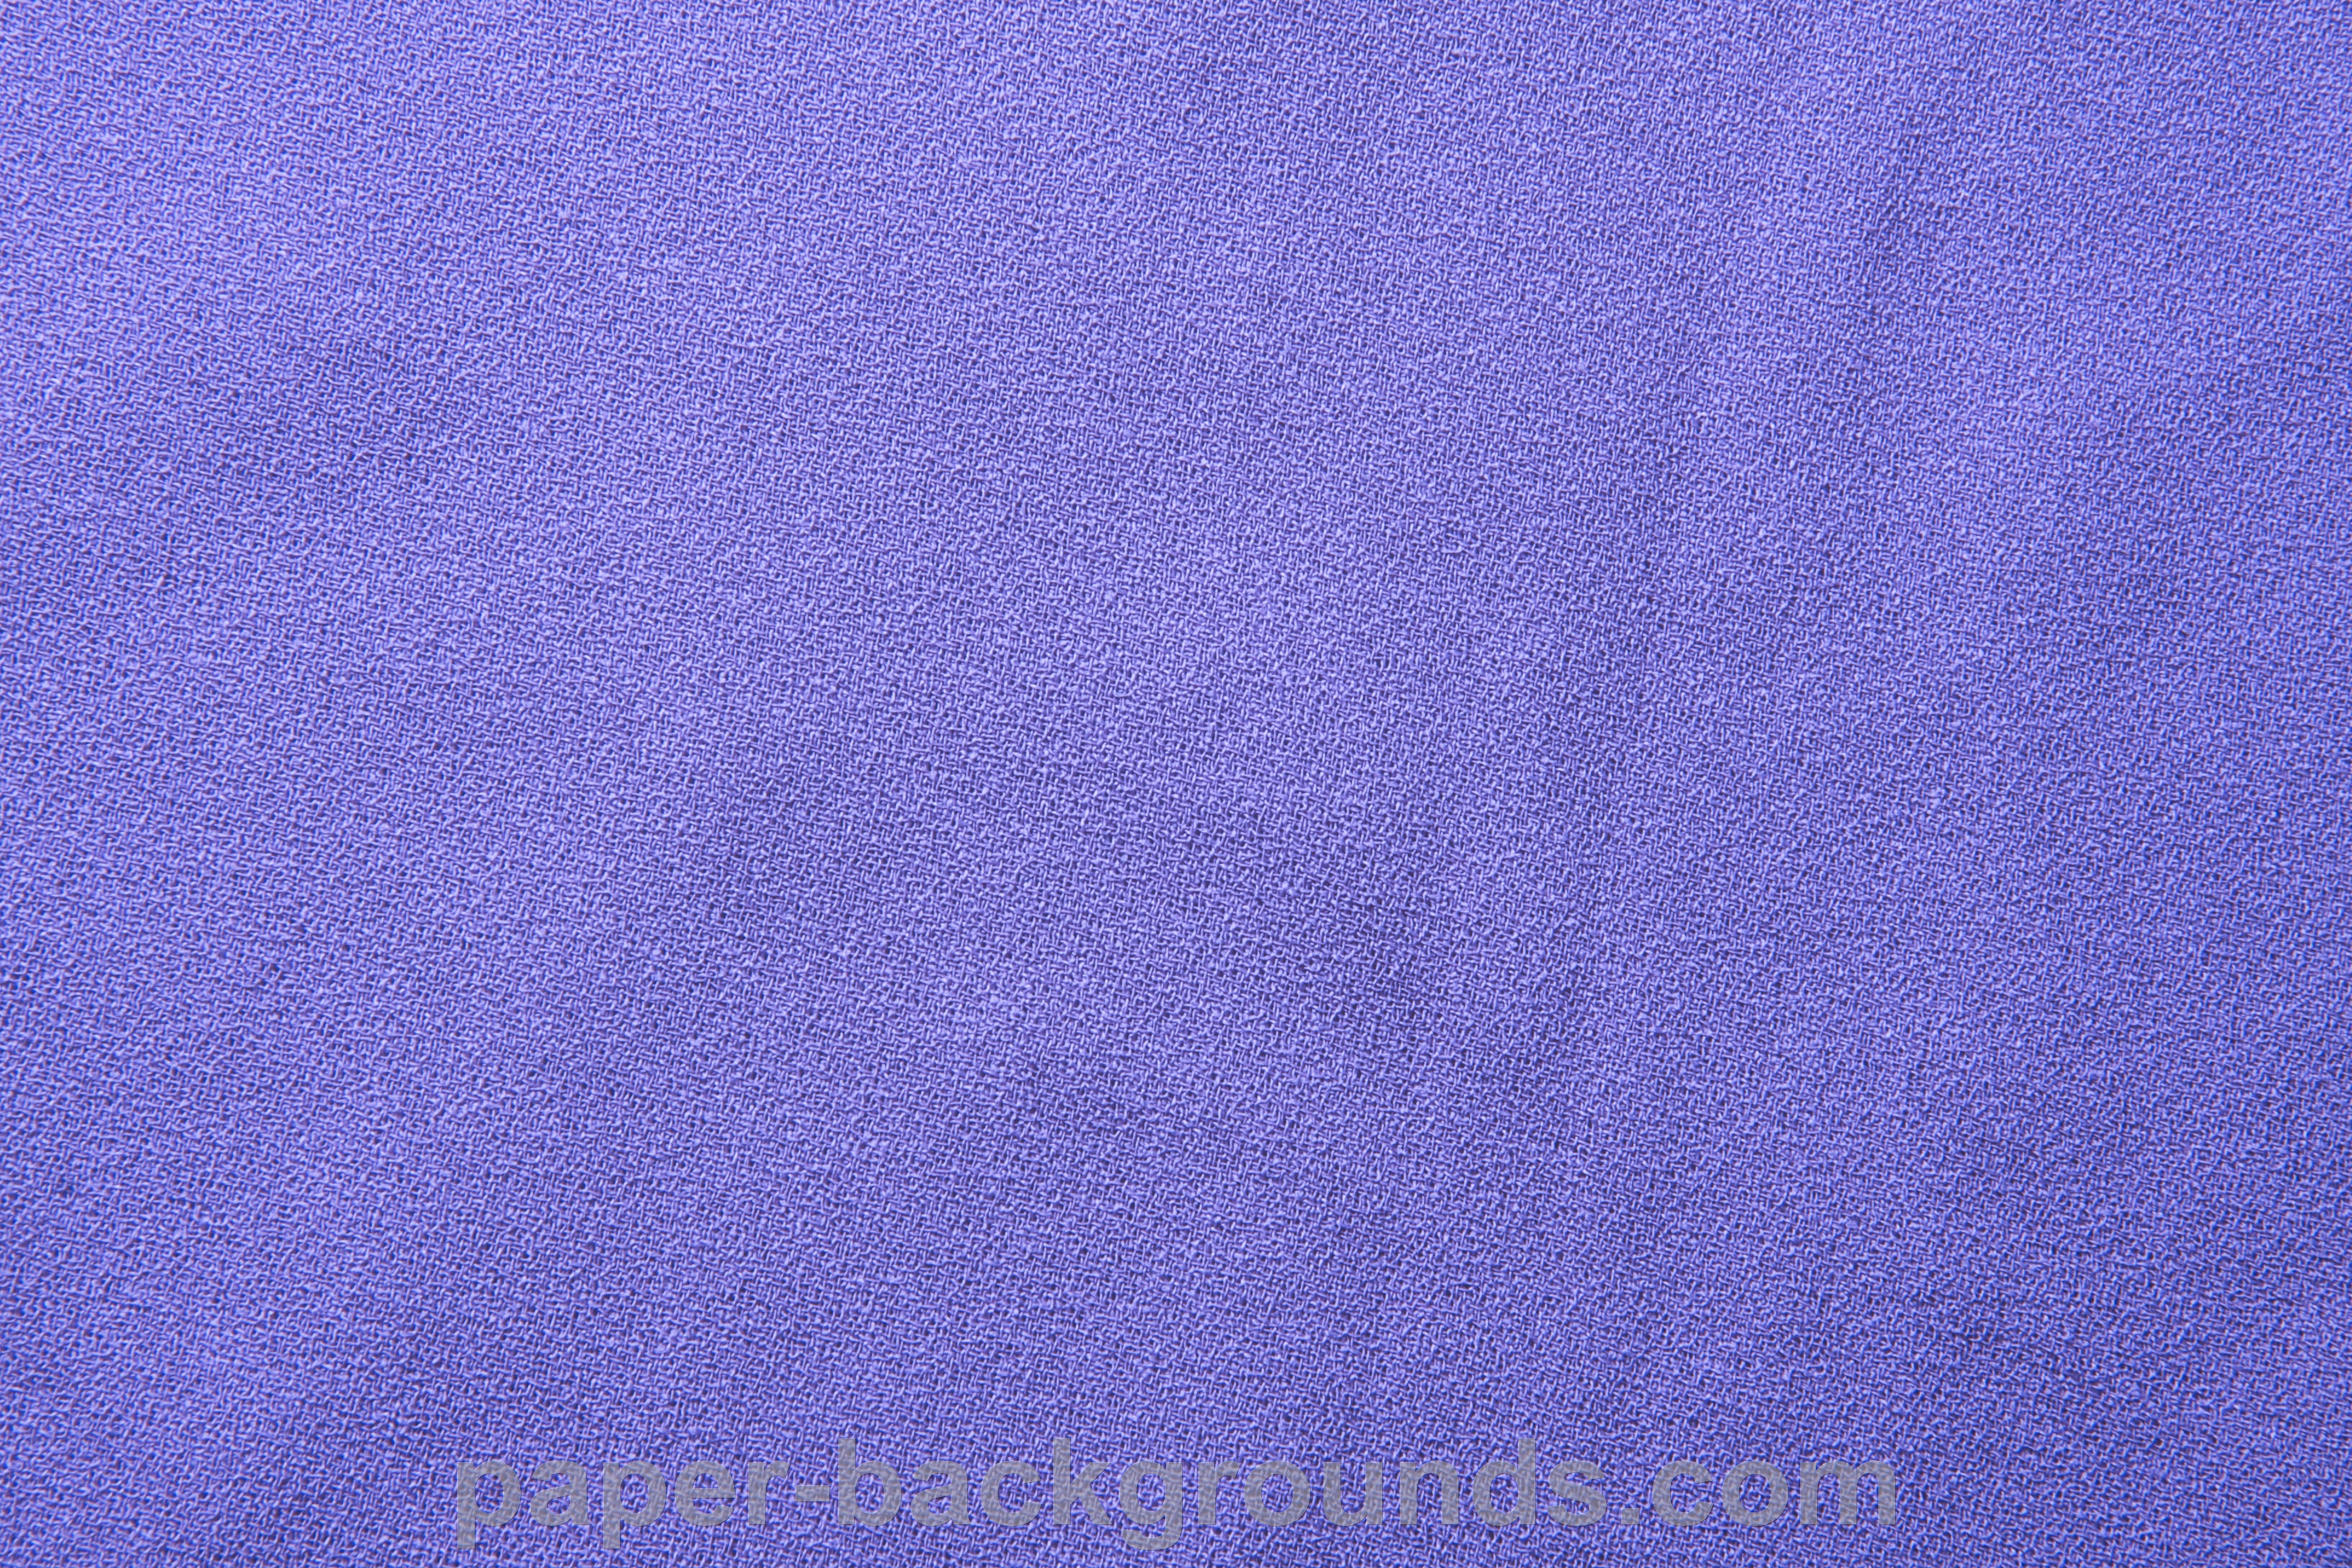 Paper backgrounds stones textures royalty free hd paper - Paper Backgrounds Light Blue Fabric Texture Background